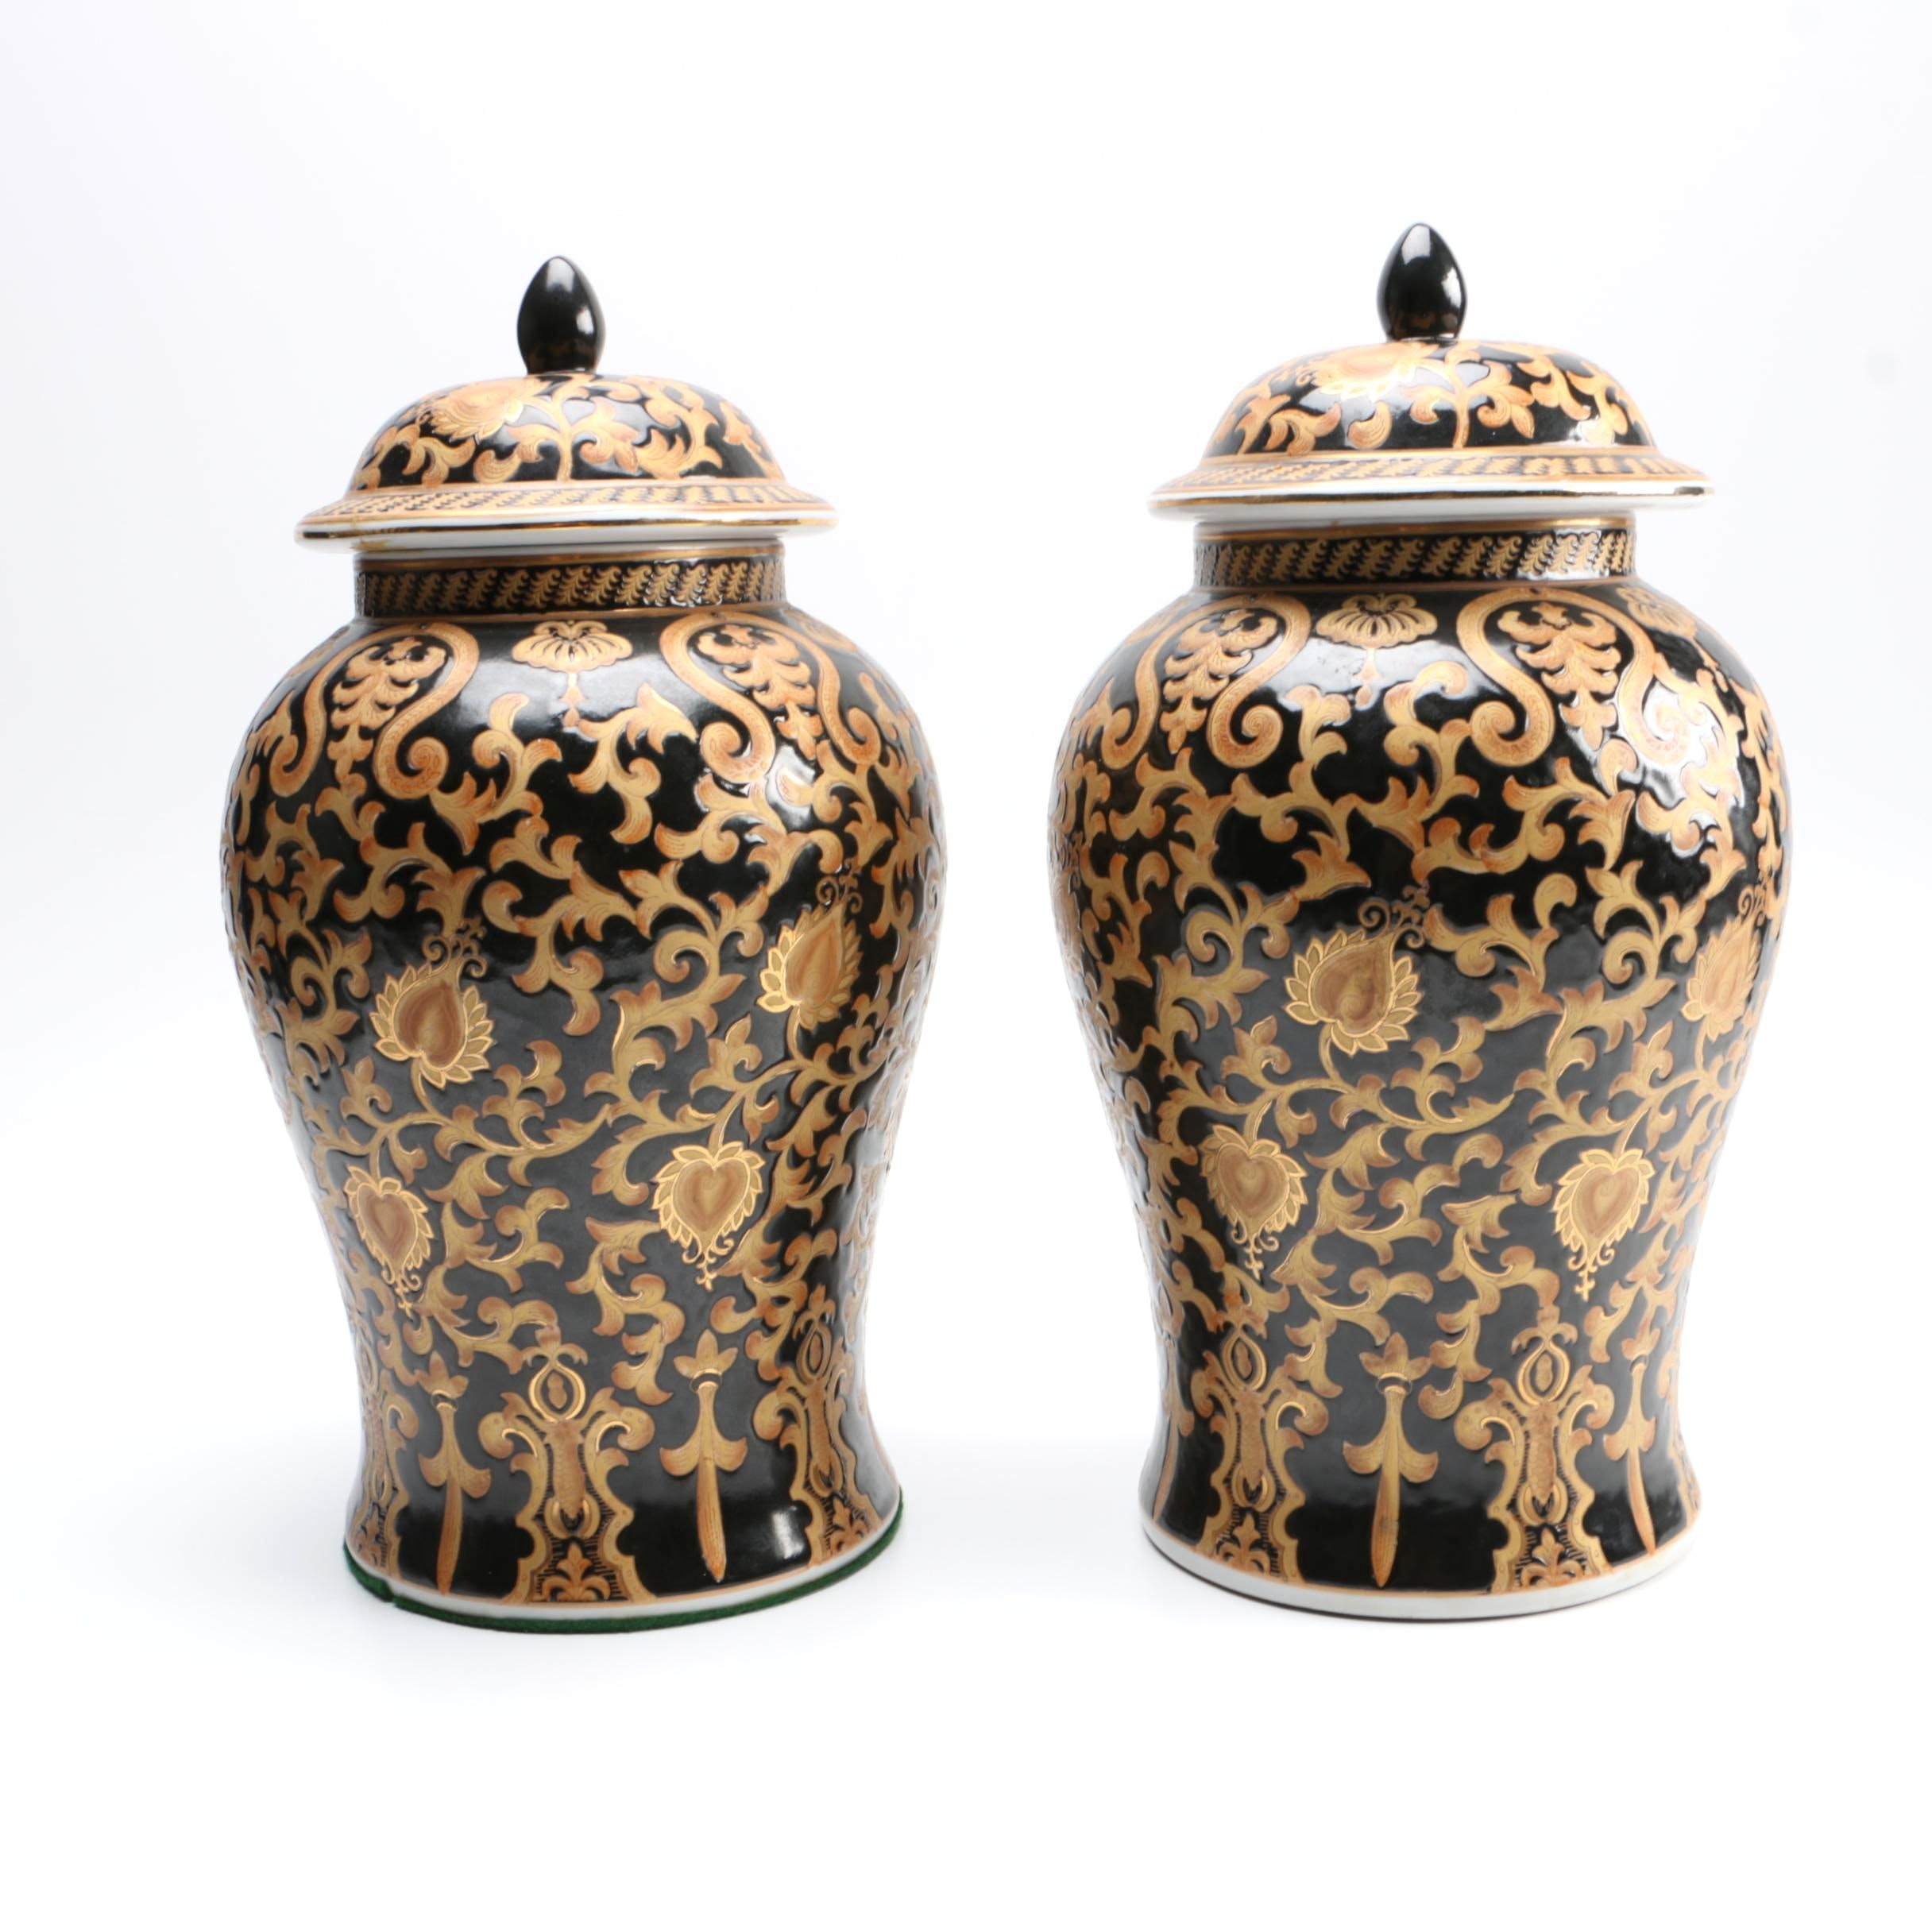 Decorative Contemporary Chinese Vases